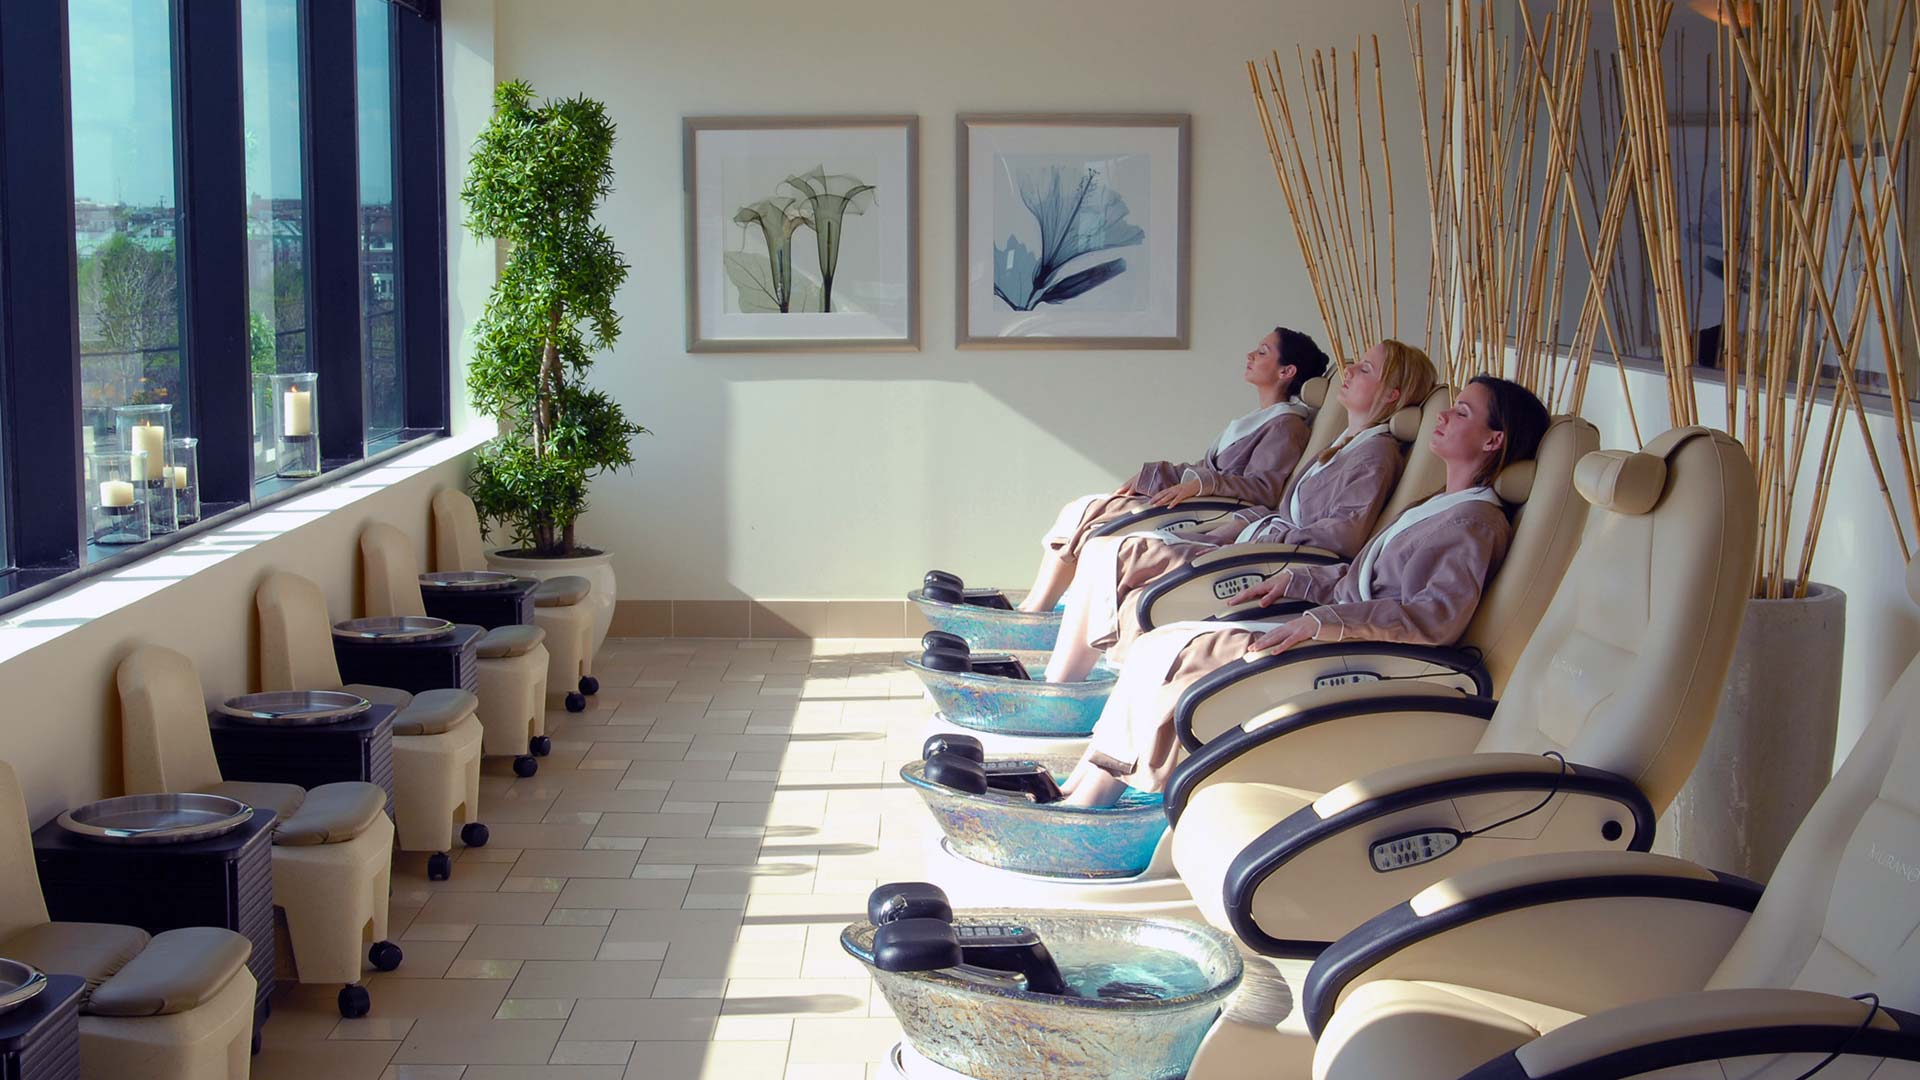 About Faces Day Spa